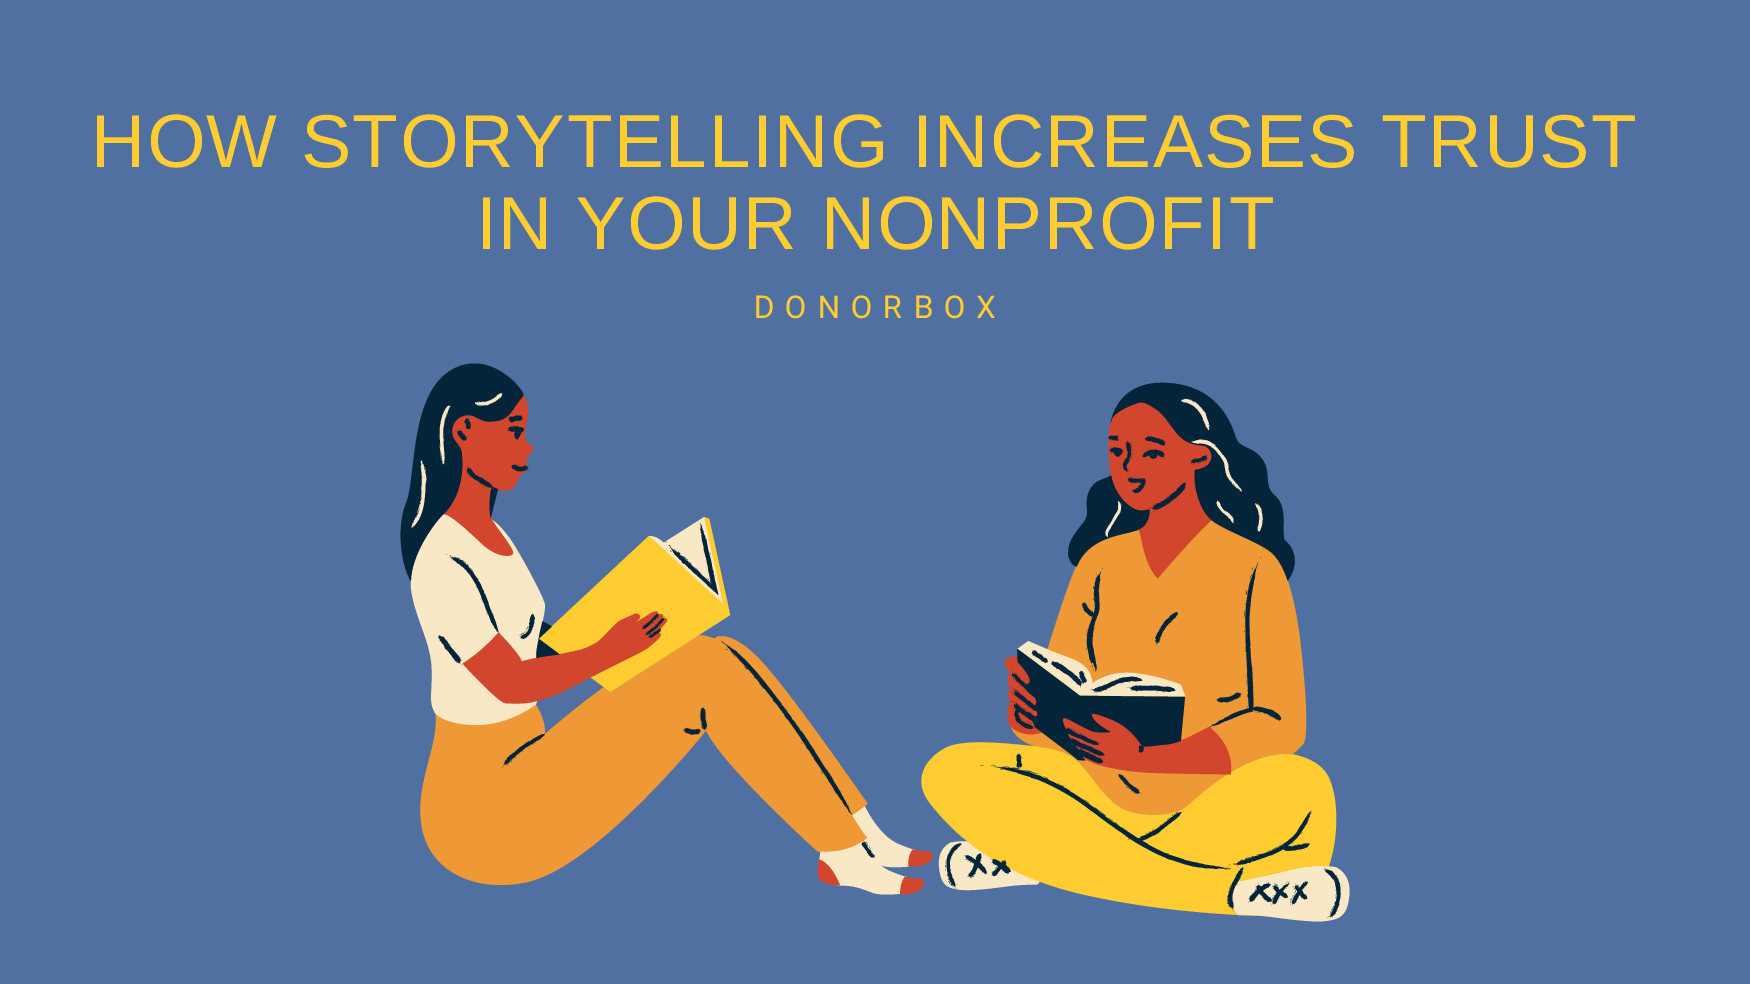 How Storytelling Increases Trust in Your Nonprofit